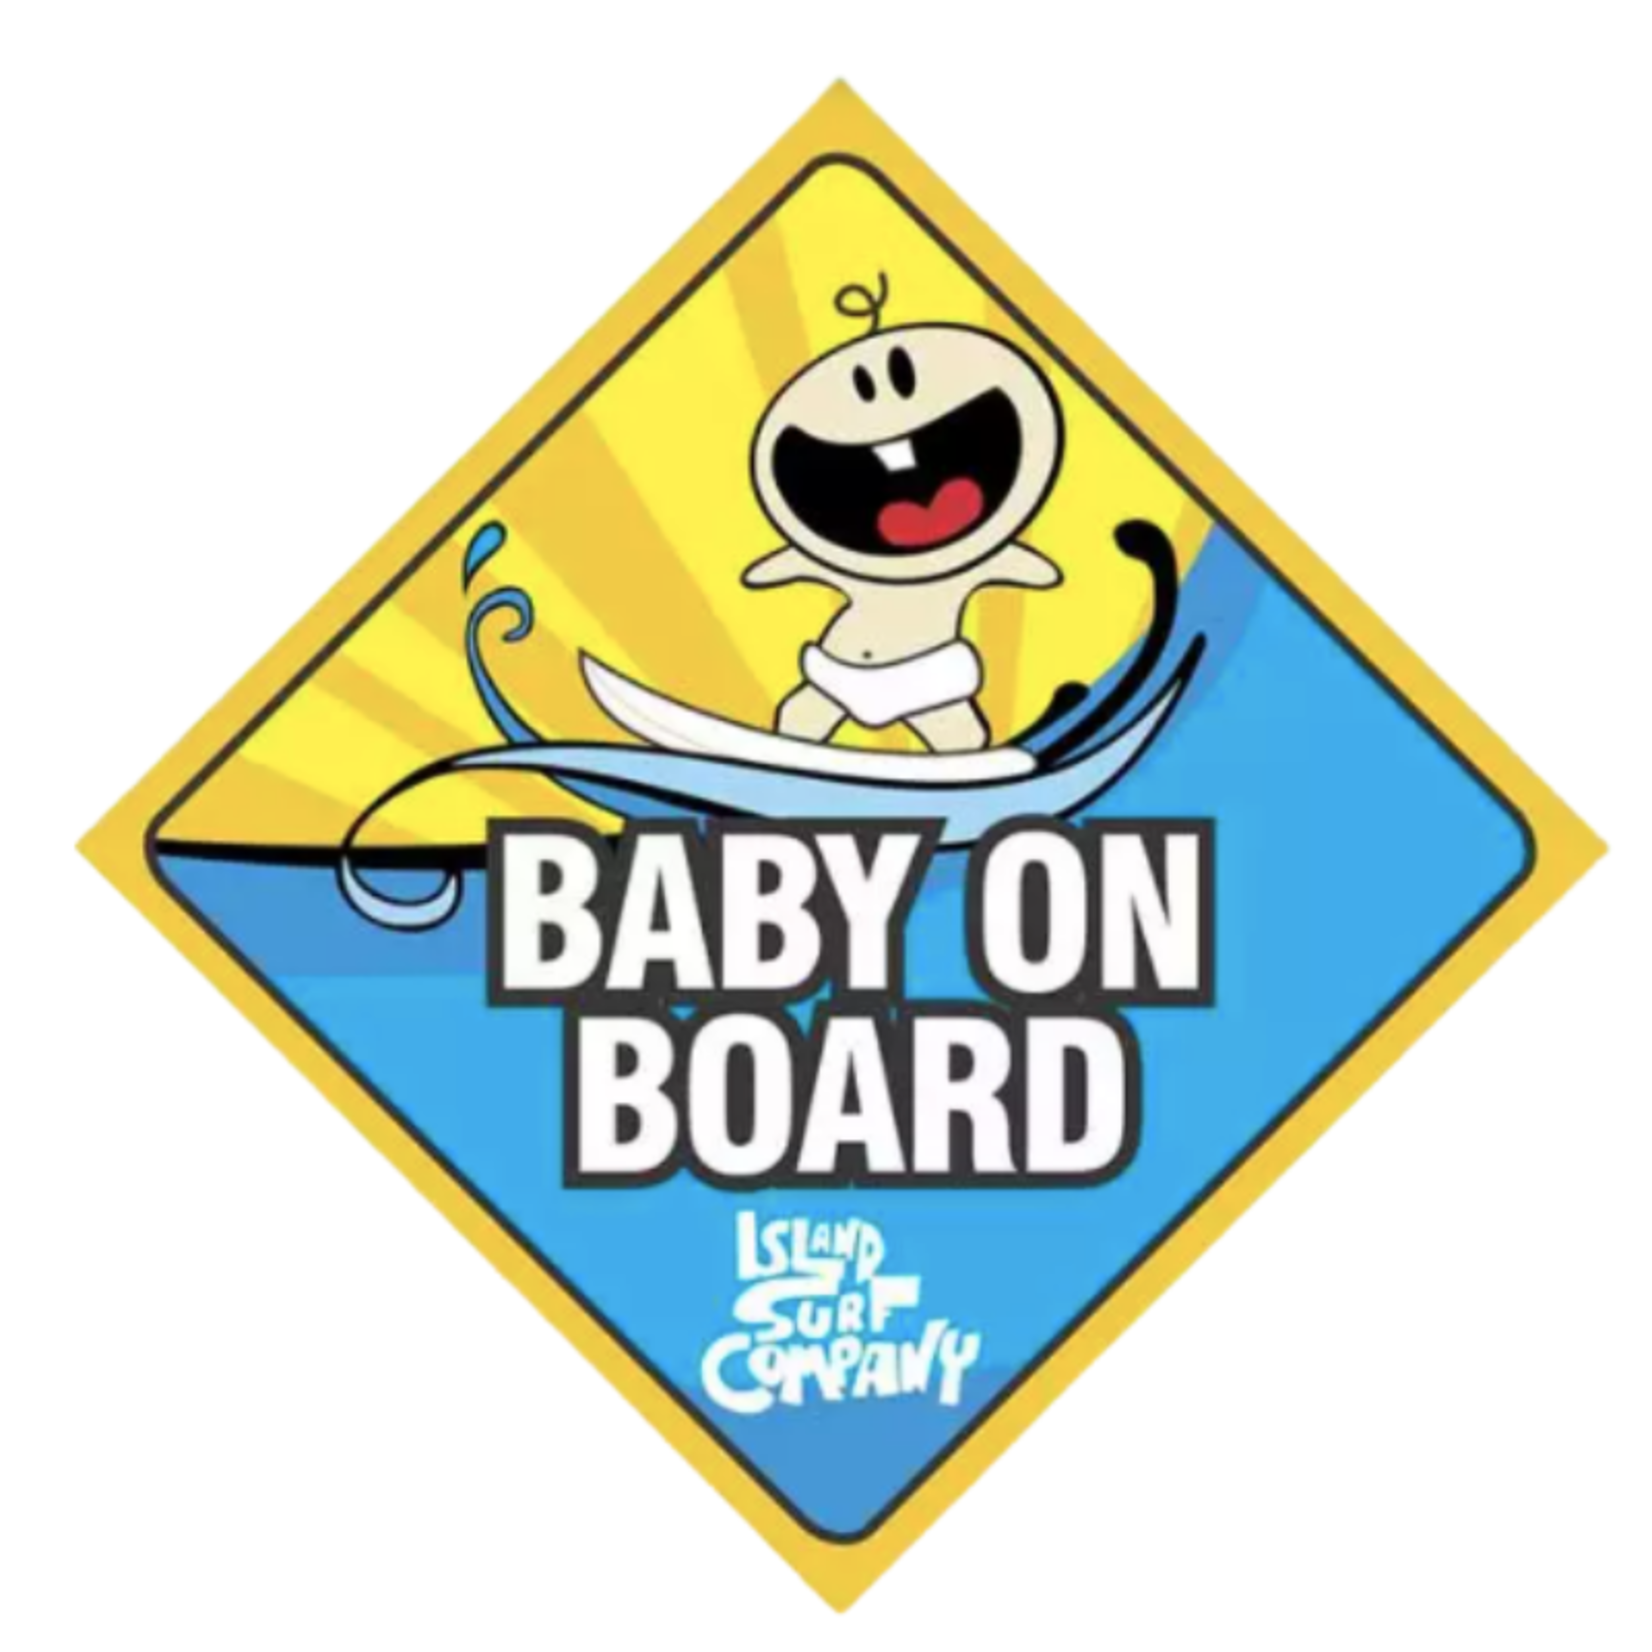 Island Surf Company Island Surf Company Baby on Board Sticker